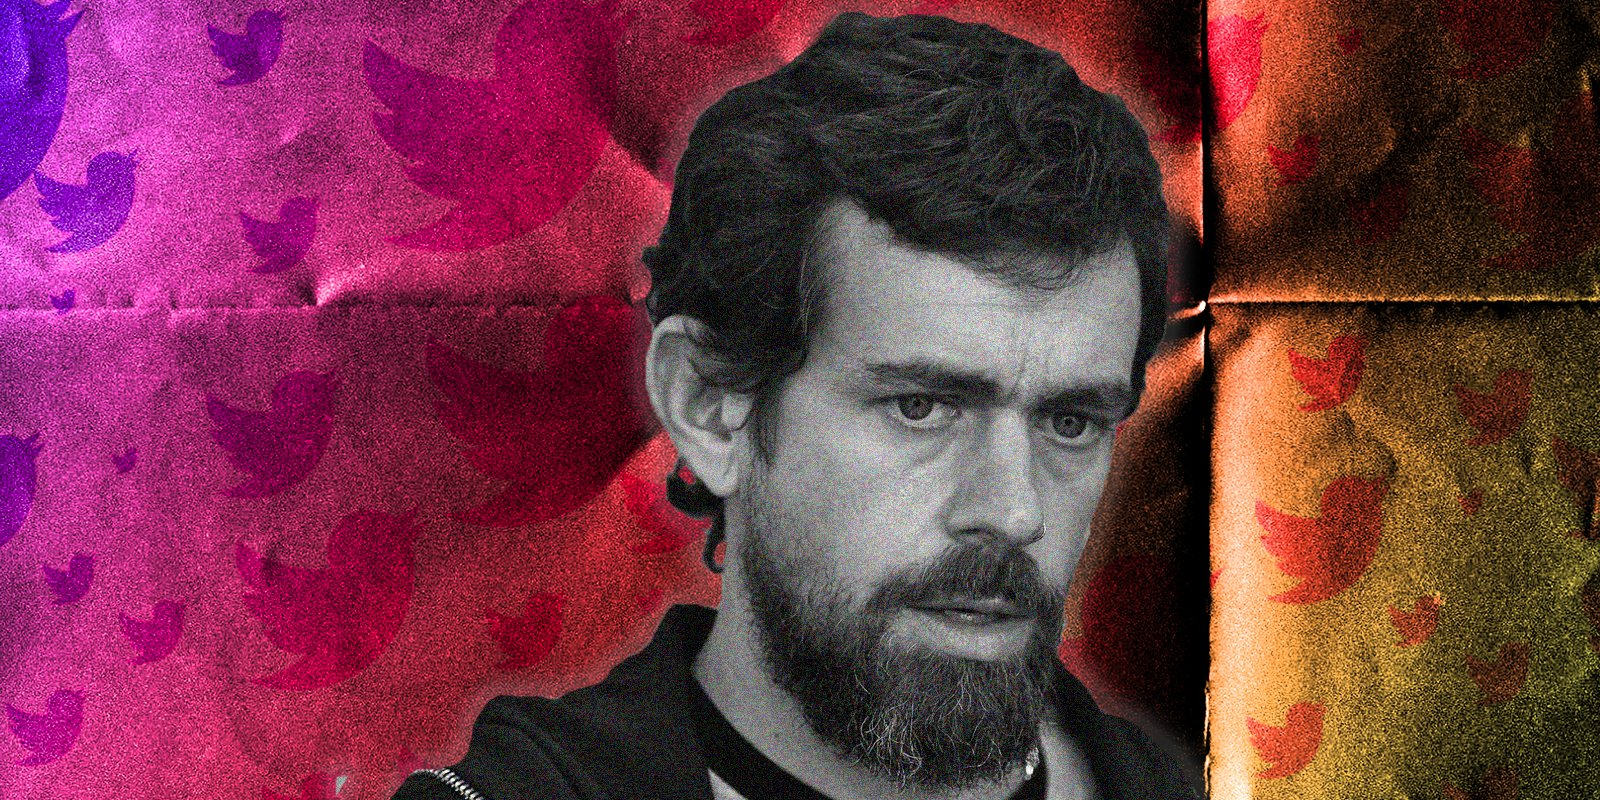 Republican Twitter investor may oust Jack Dorsey